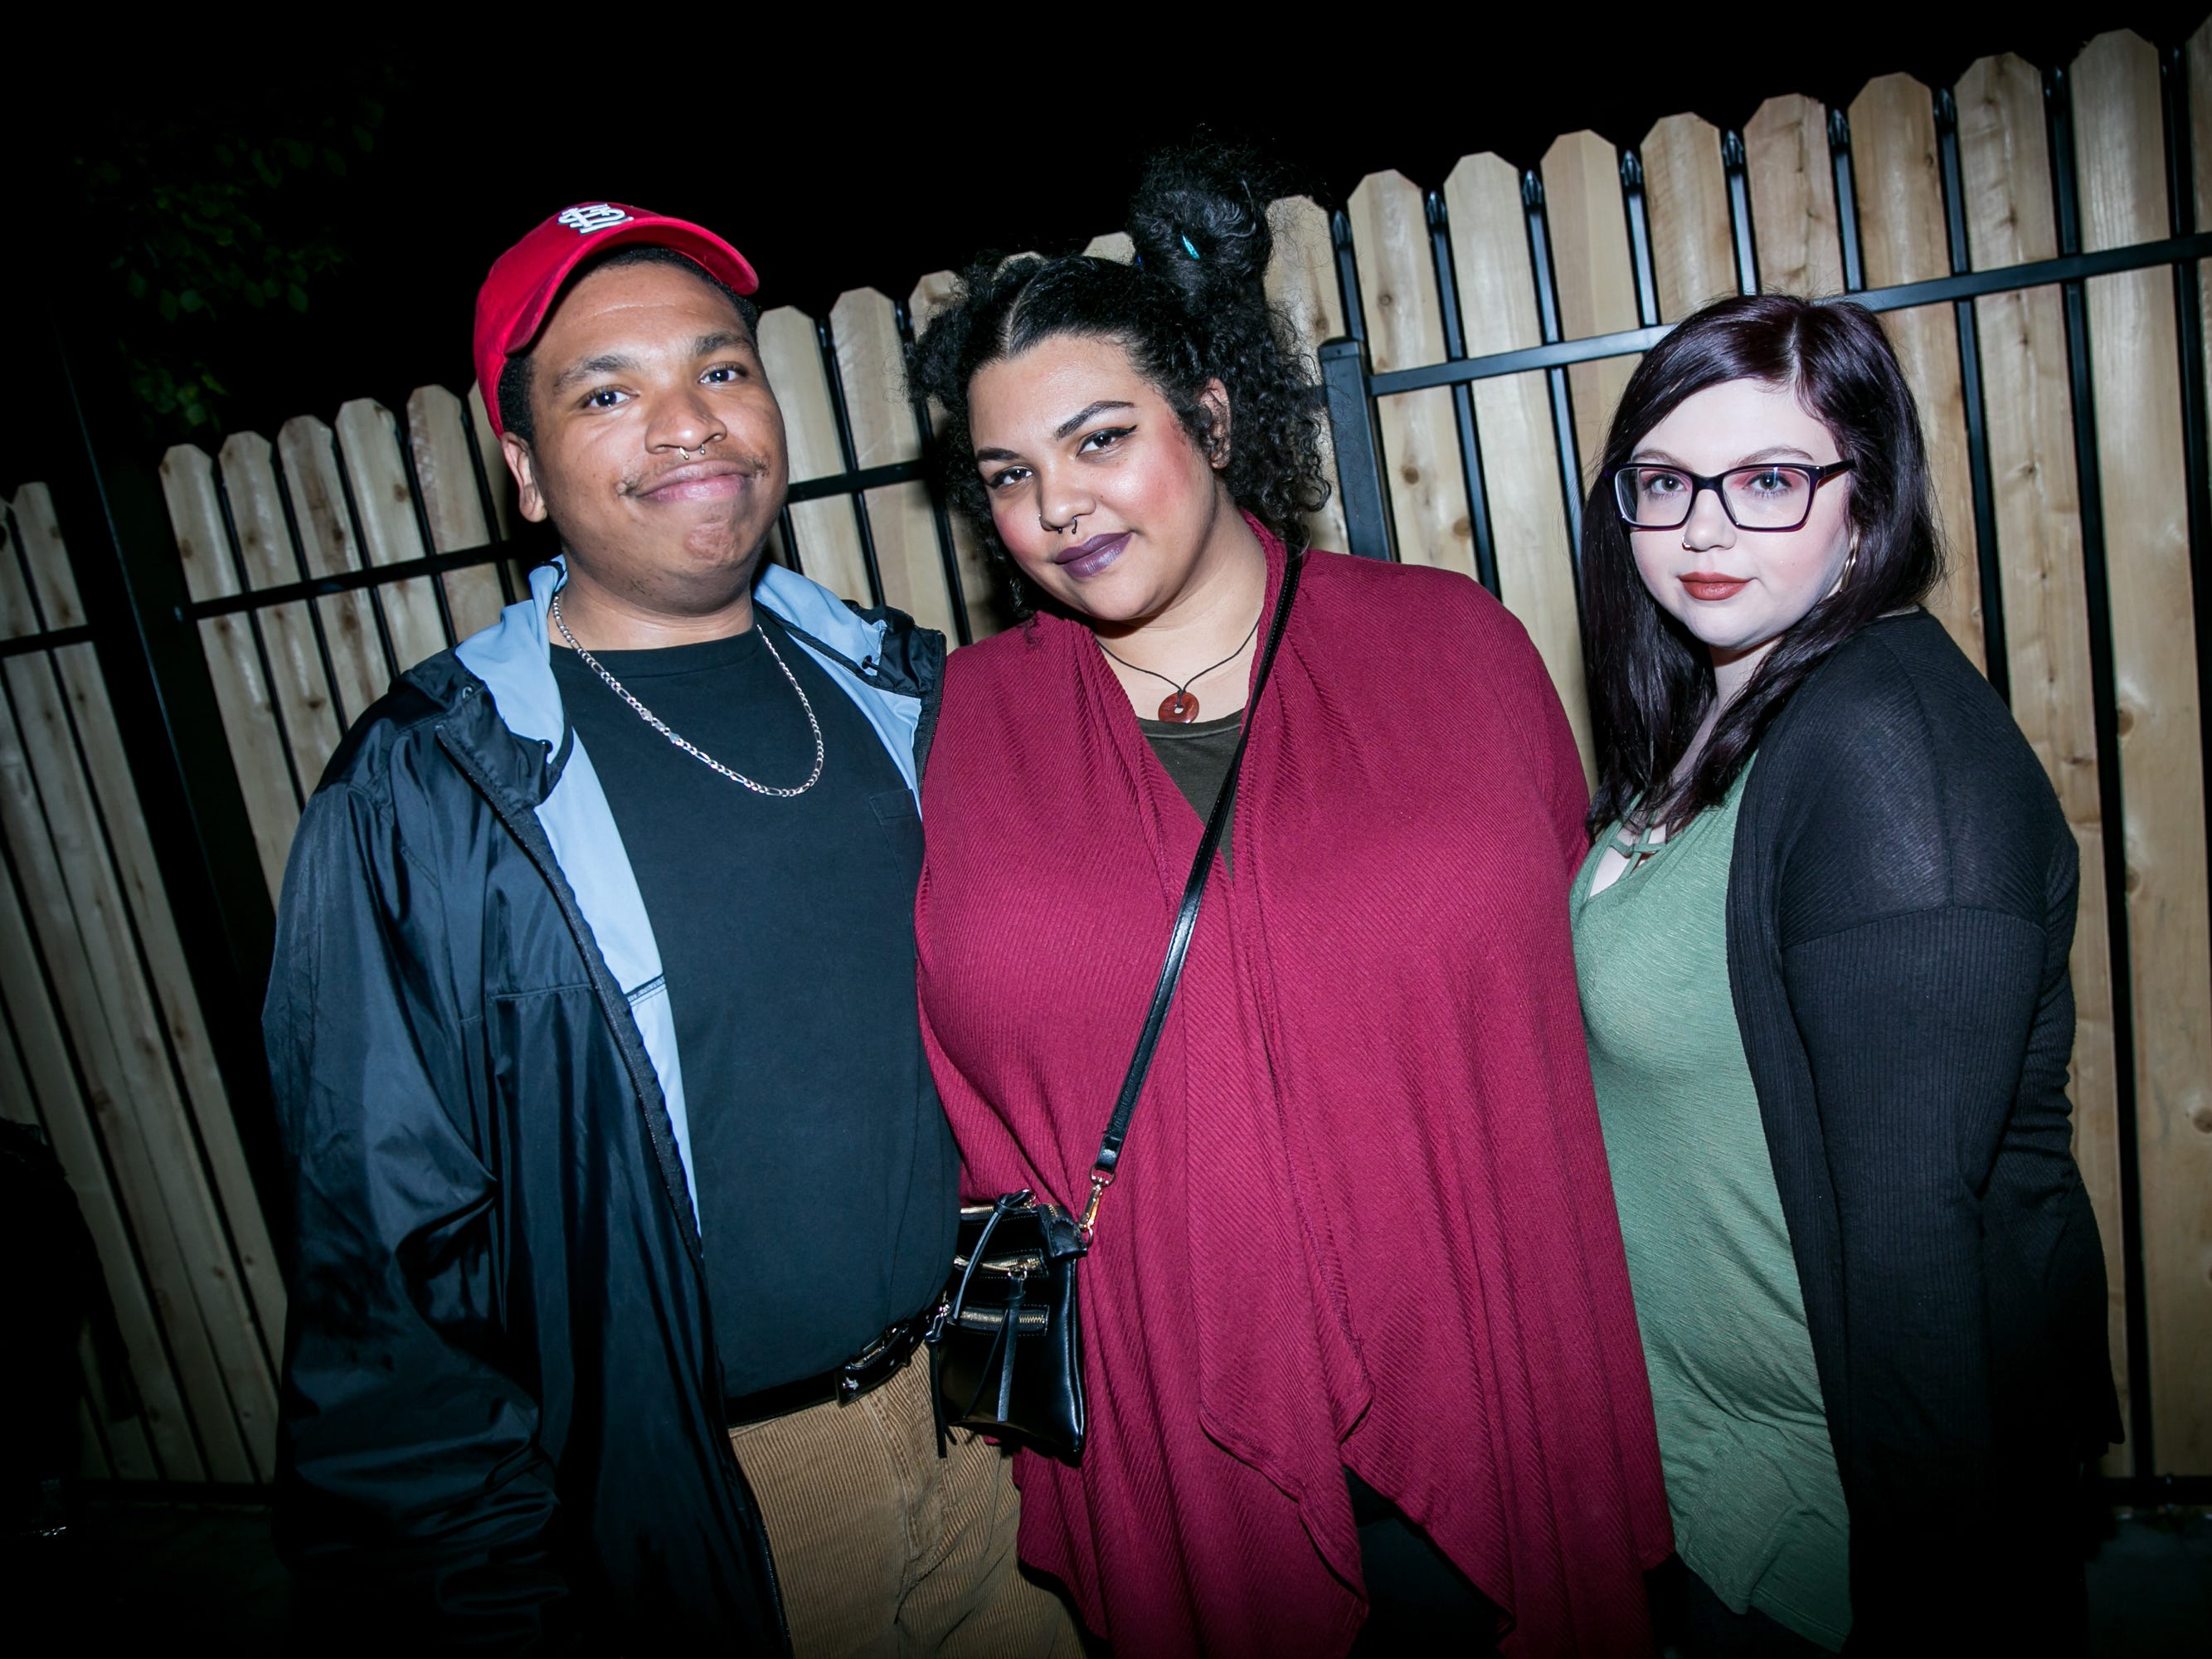 It took some finesse during Drake Night: Fake Real Love at the Van Buren on Feb. 9, 2019.